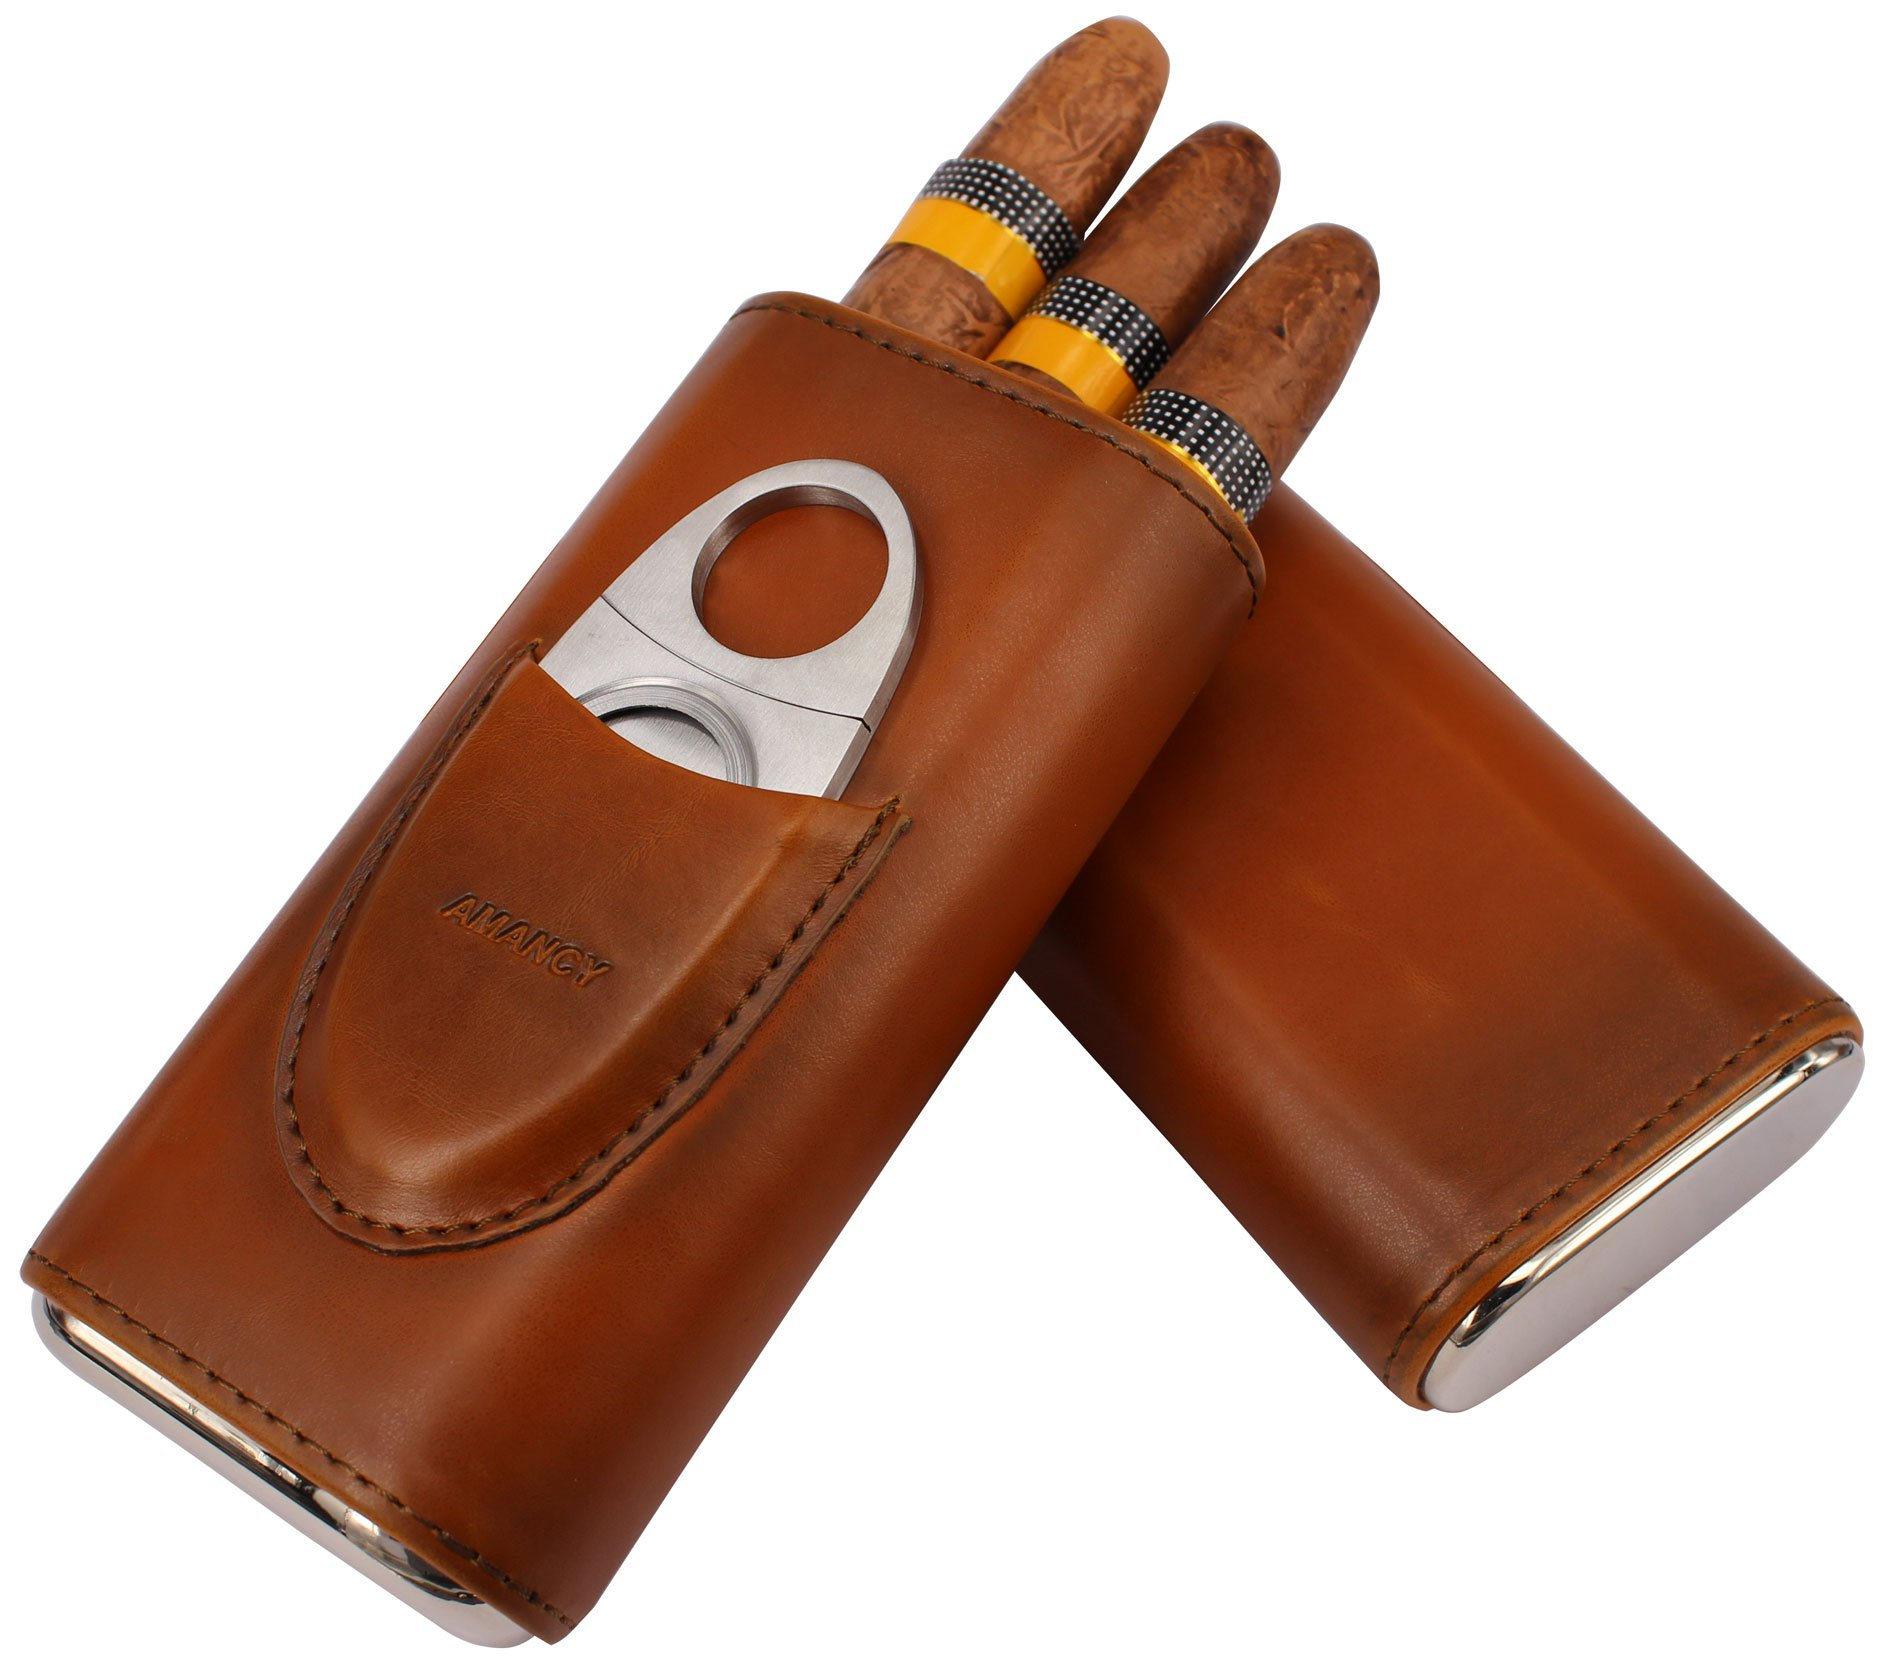 AMANCY Top Quality 3- Finger Brown Leather Cigar Case, Cedar Wood Lined Cigar Humidor with Silver Stainless Steel Cutter by AMANCY (Image #5)